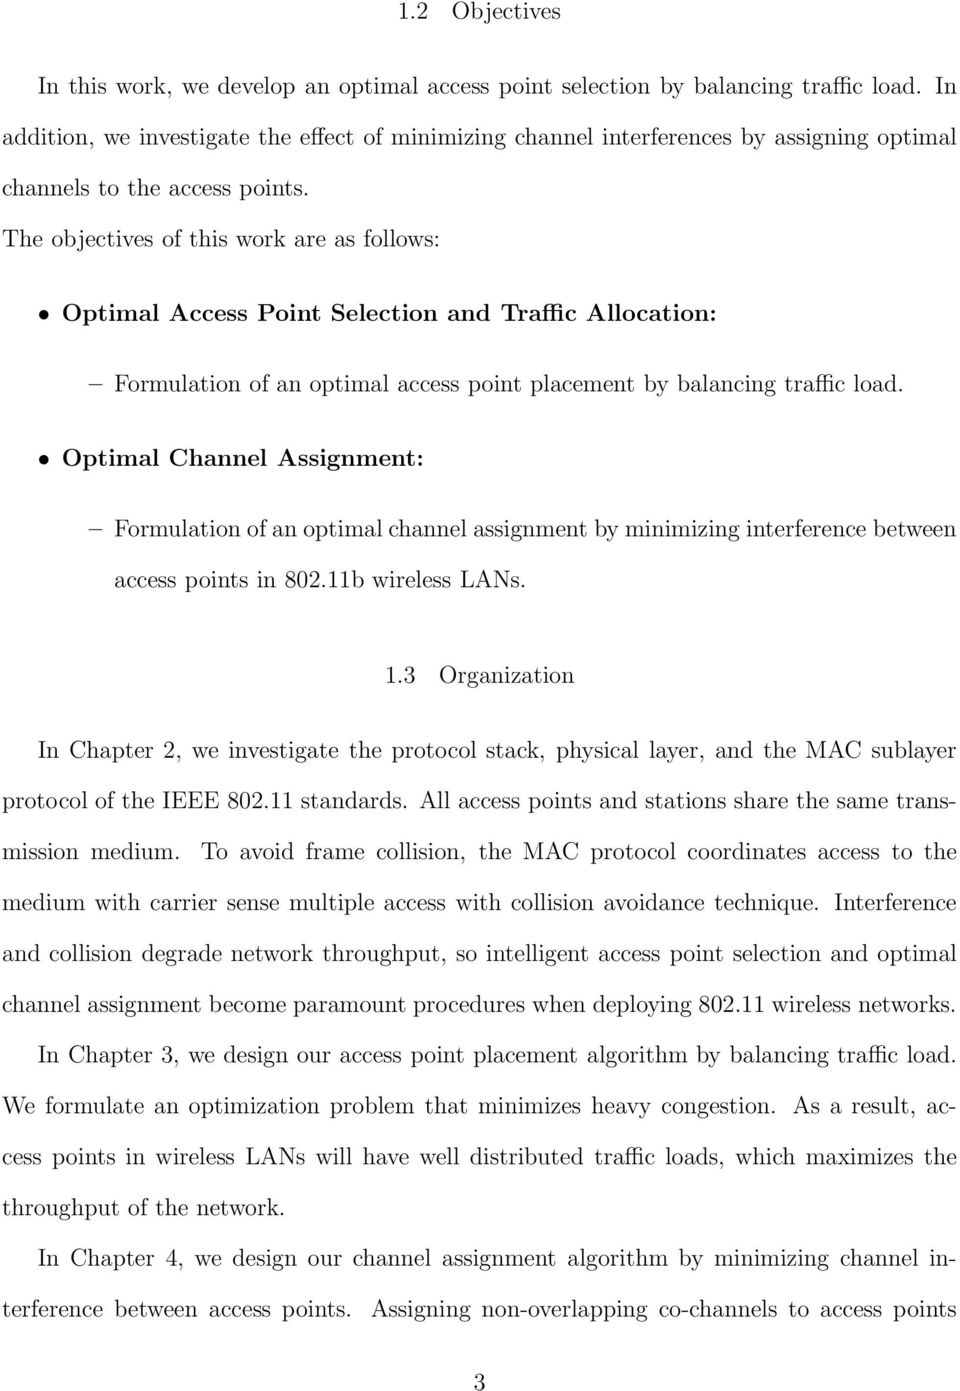 The objectives of this work are as follows: Optimal Access Point Selection and Traffic Allocation: Formulation of an optimal access point placement by balancing traffic load.